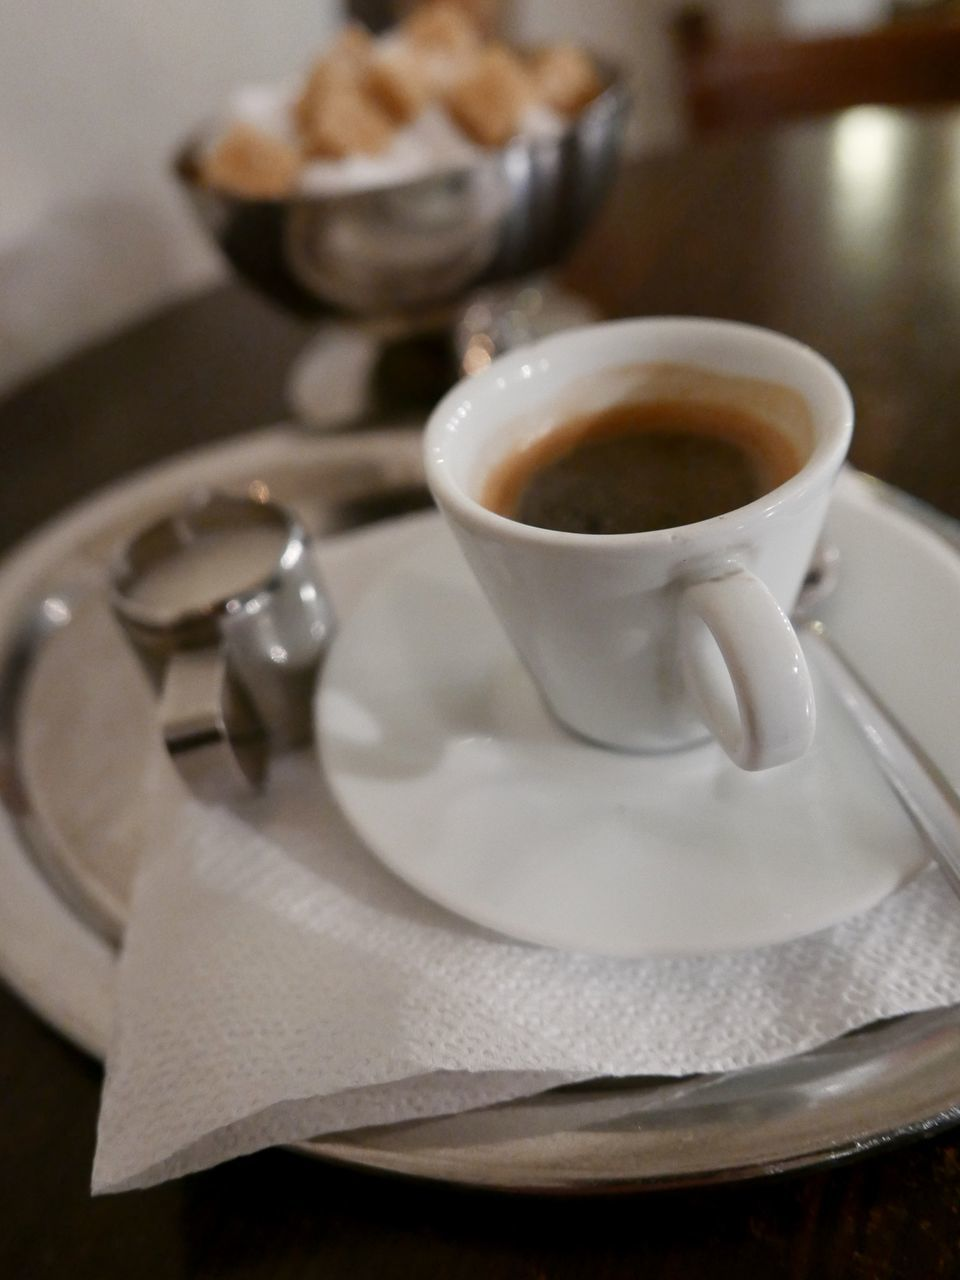 High Angle View Of Coffee With Sugar Served On Table